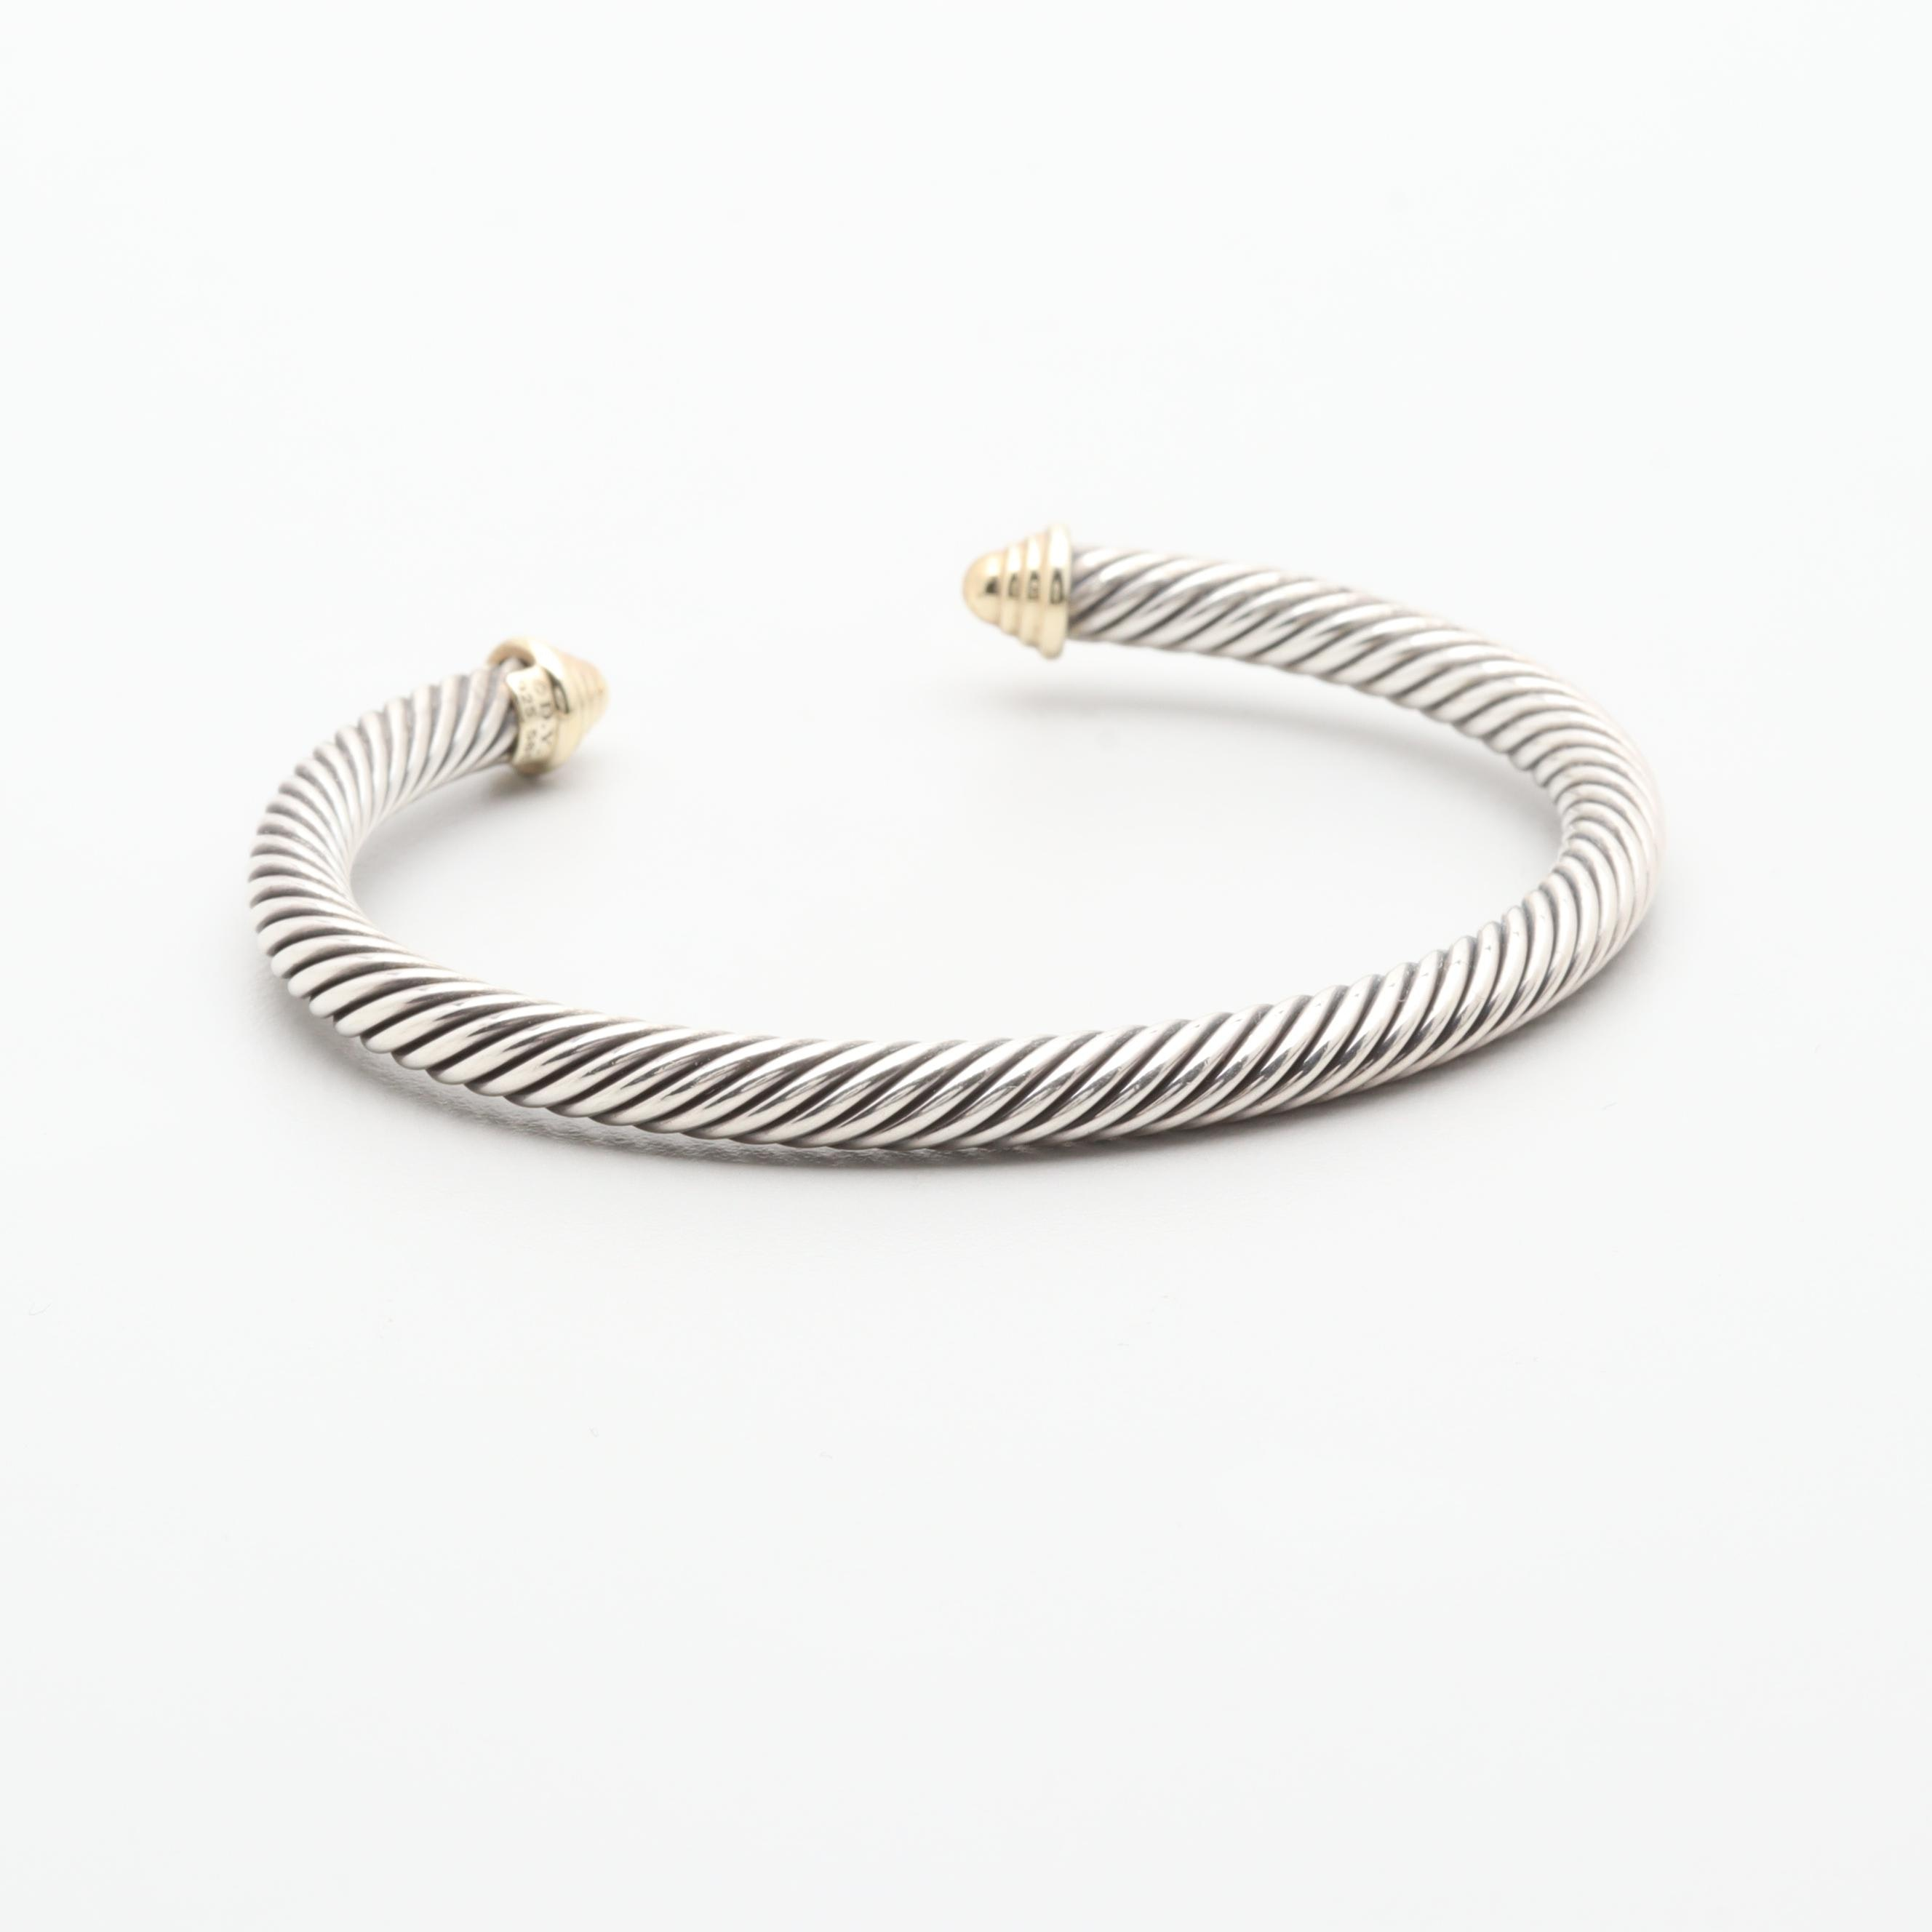 David Yurman Sterling Silver Cable Cuff Bracelet With 14K Yellow Gold Accents